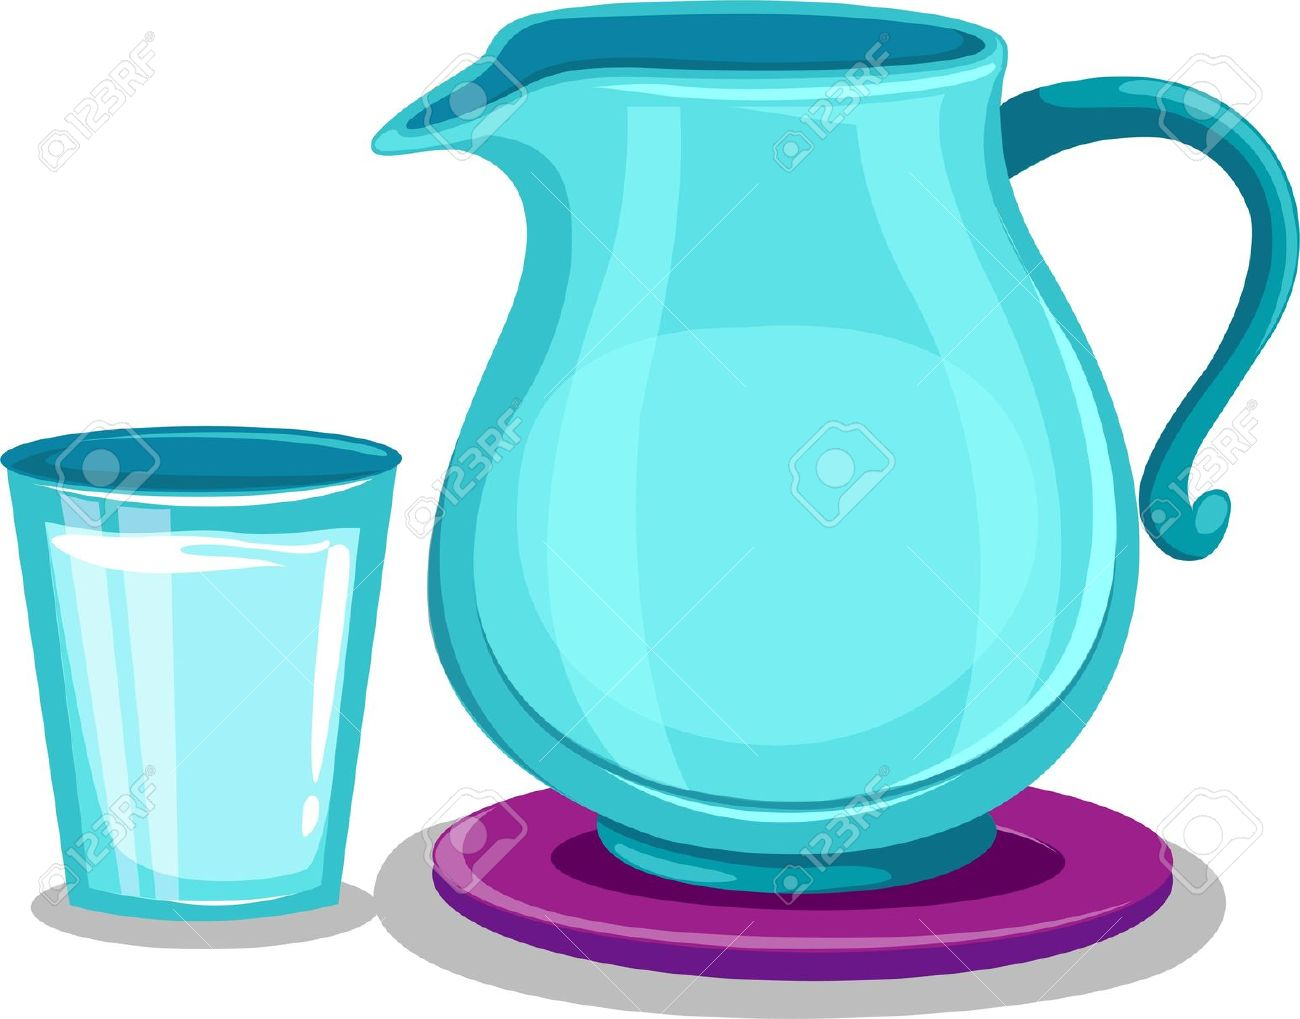 8 Cups Of Water Clipart